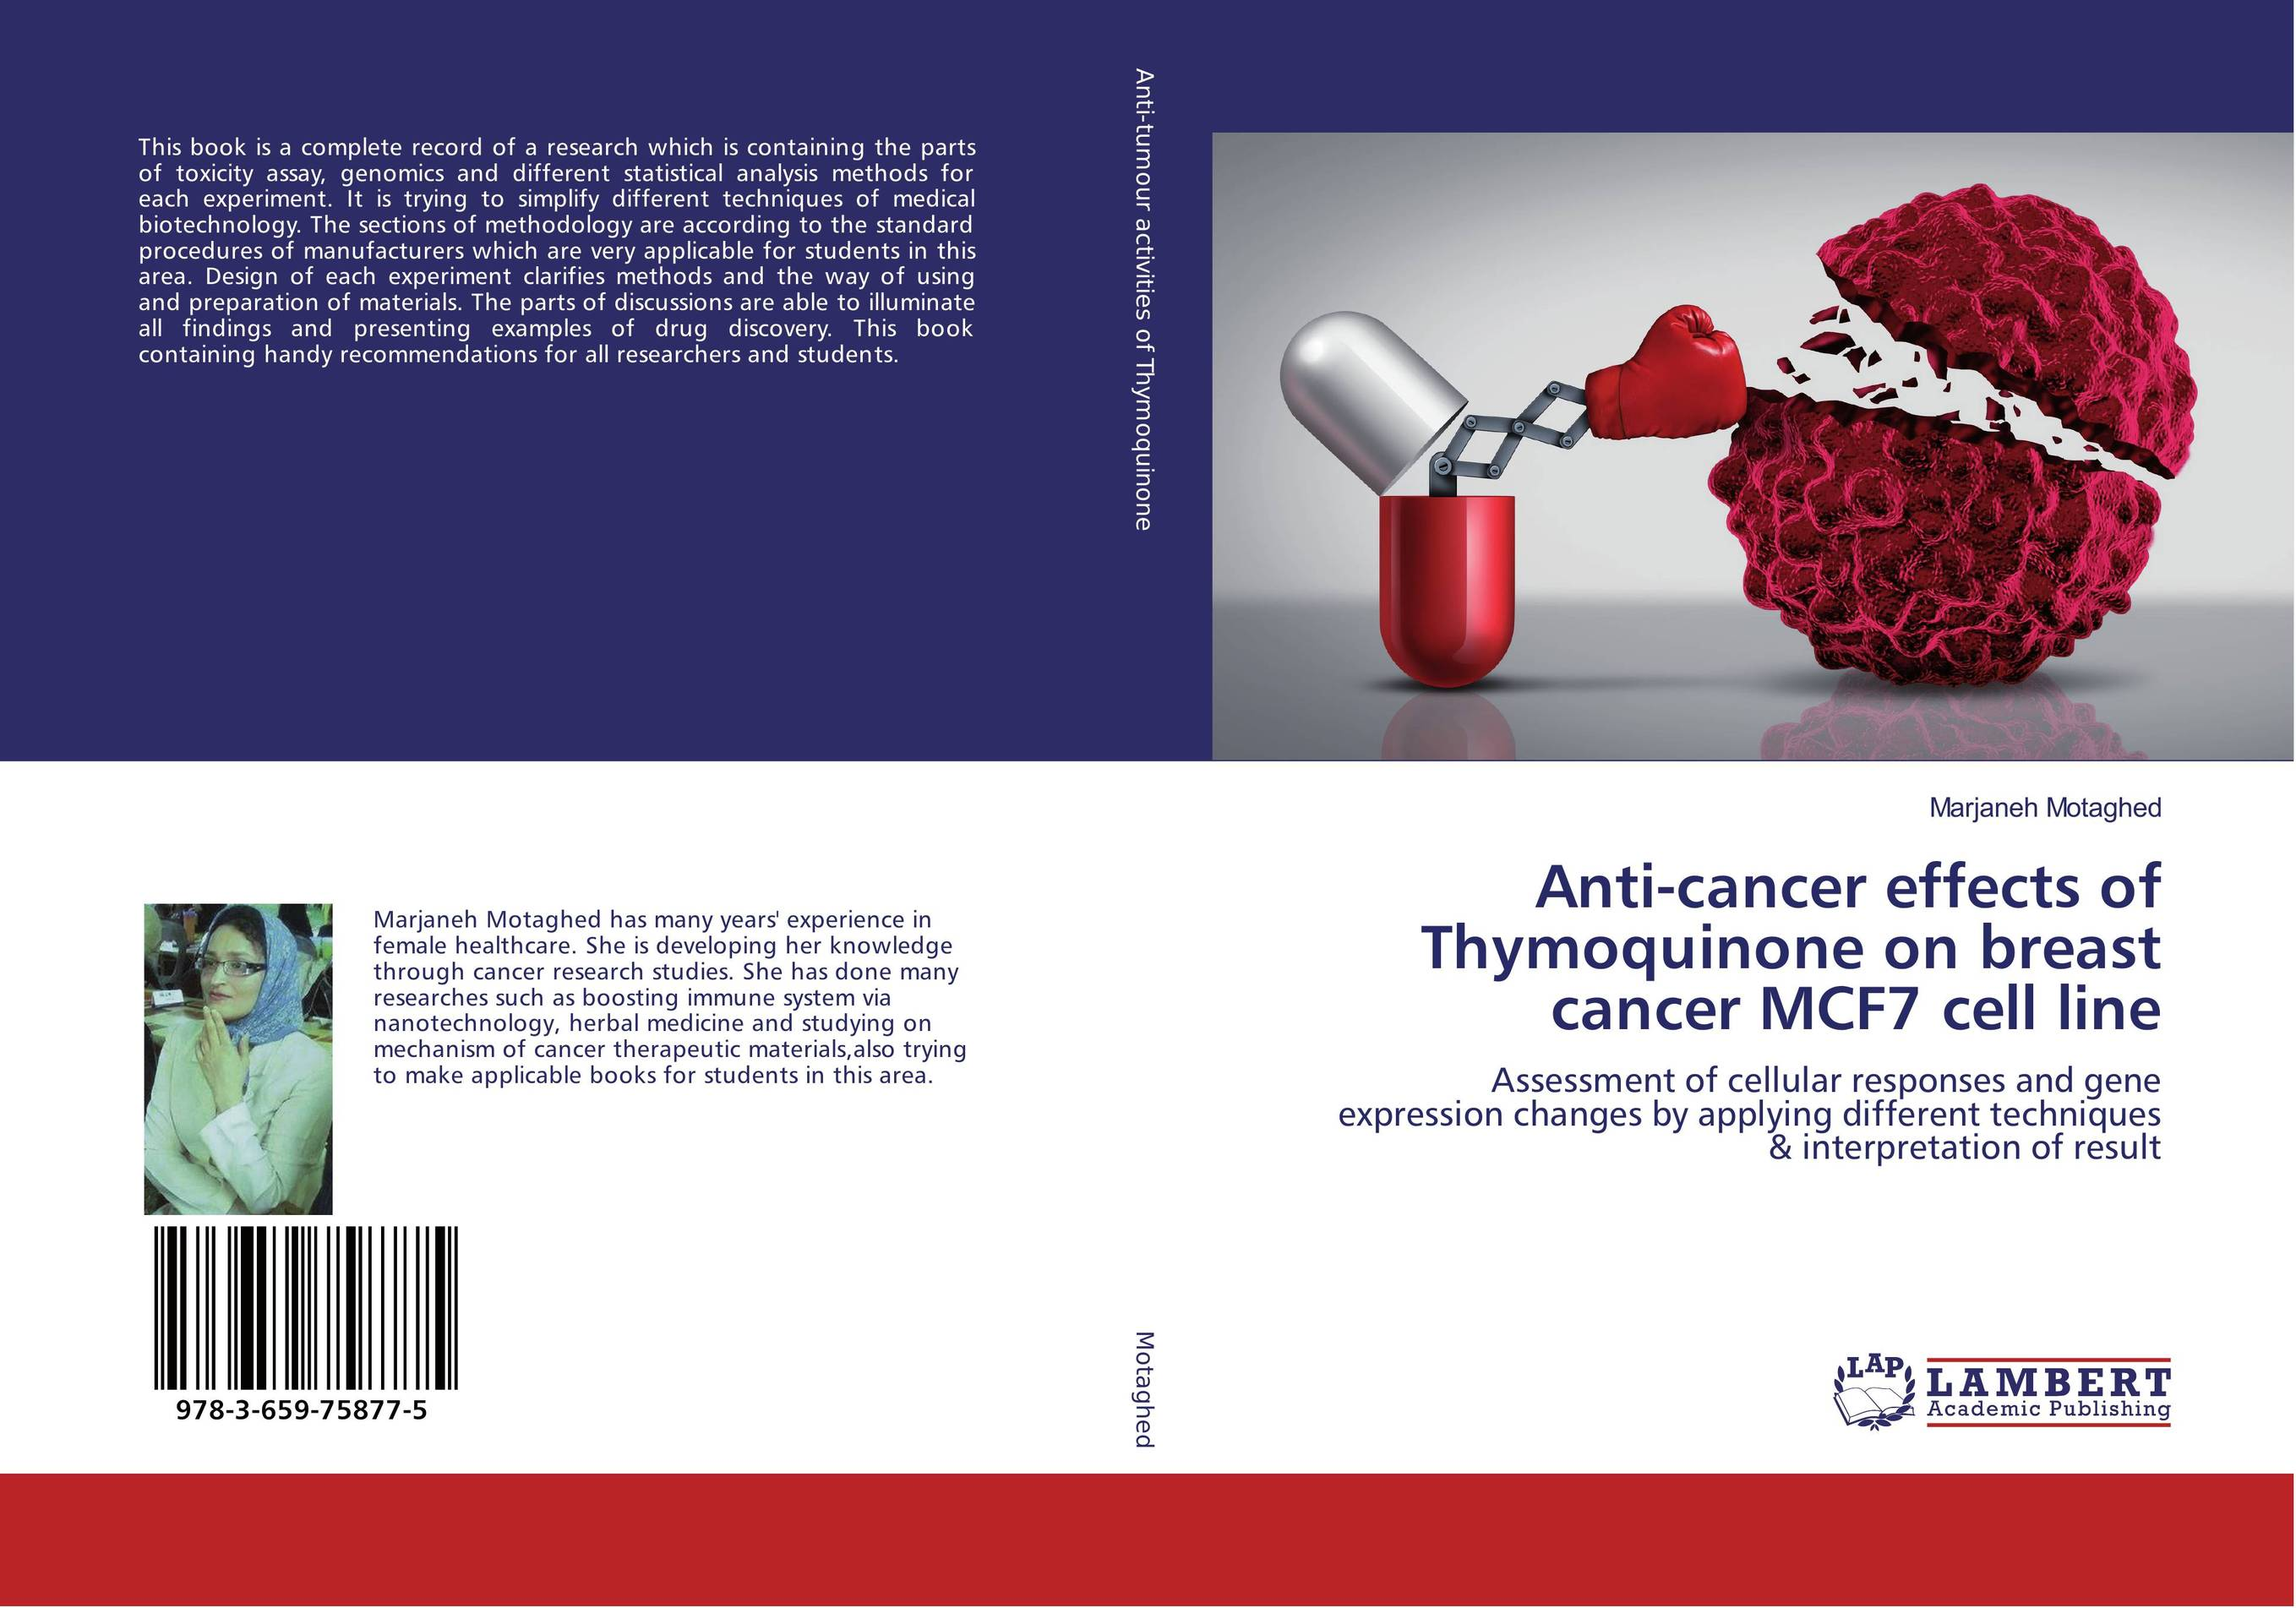 Anti-cancer effects of Thymoquinone on breast cancer MCF7 cell line choices in breast cancer treatment – medical specialists and cancer survivors tell you what you need to know